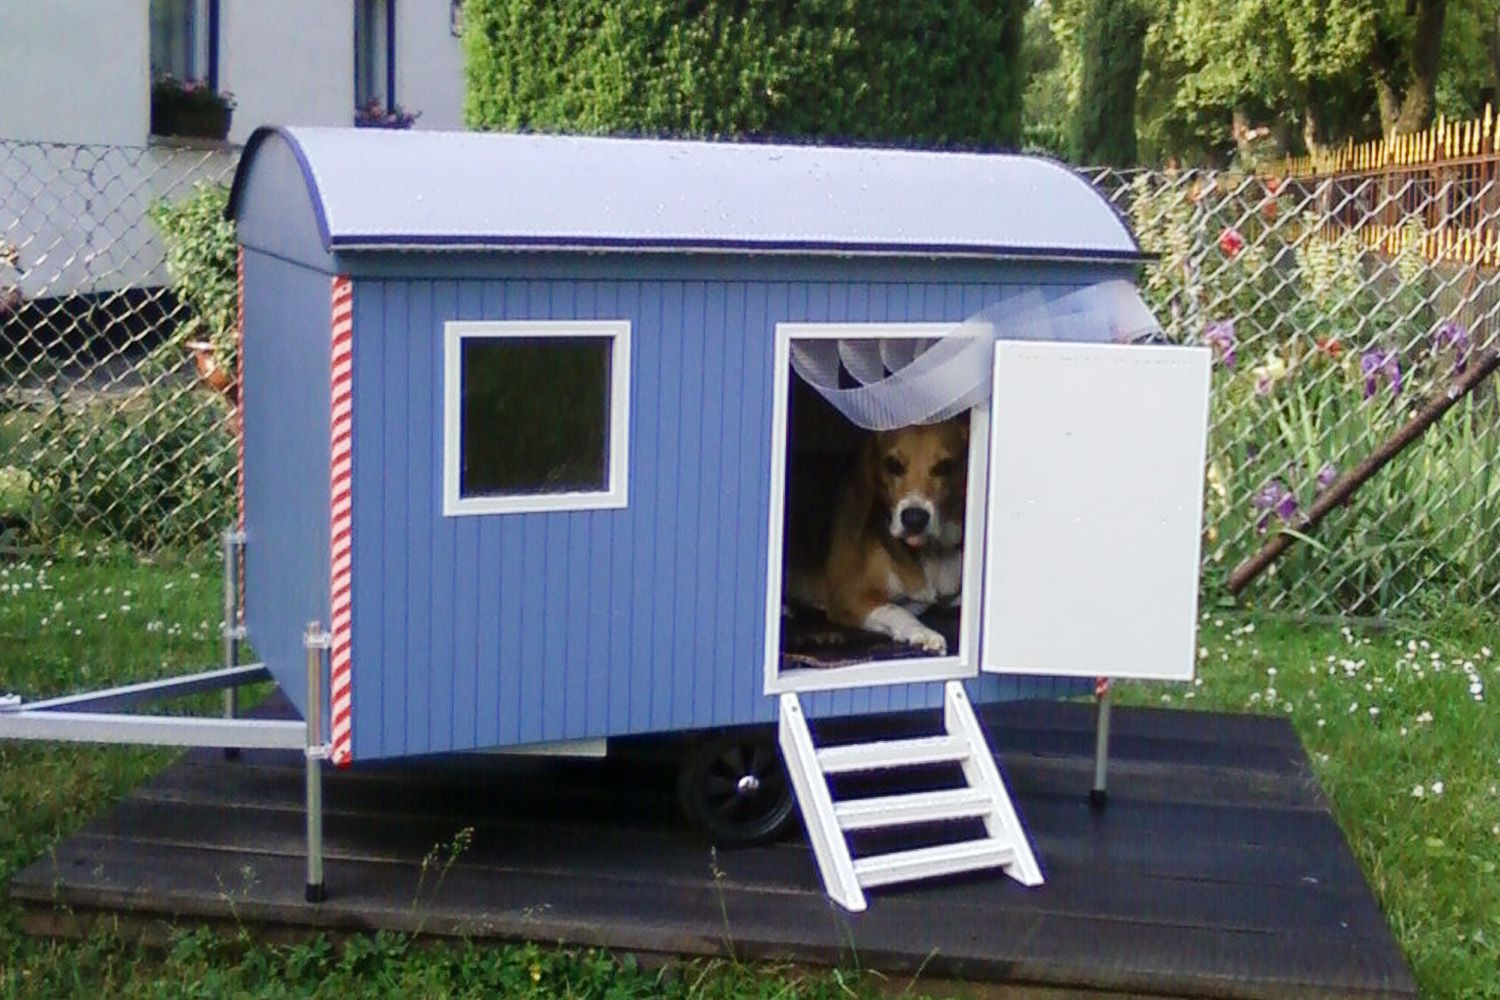 hundeh tte bauwagen dog houses pinterest dog houses dog and dog beds. Black Bedroom Furniture Sets. Home Design Ideas